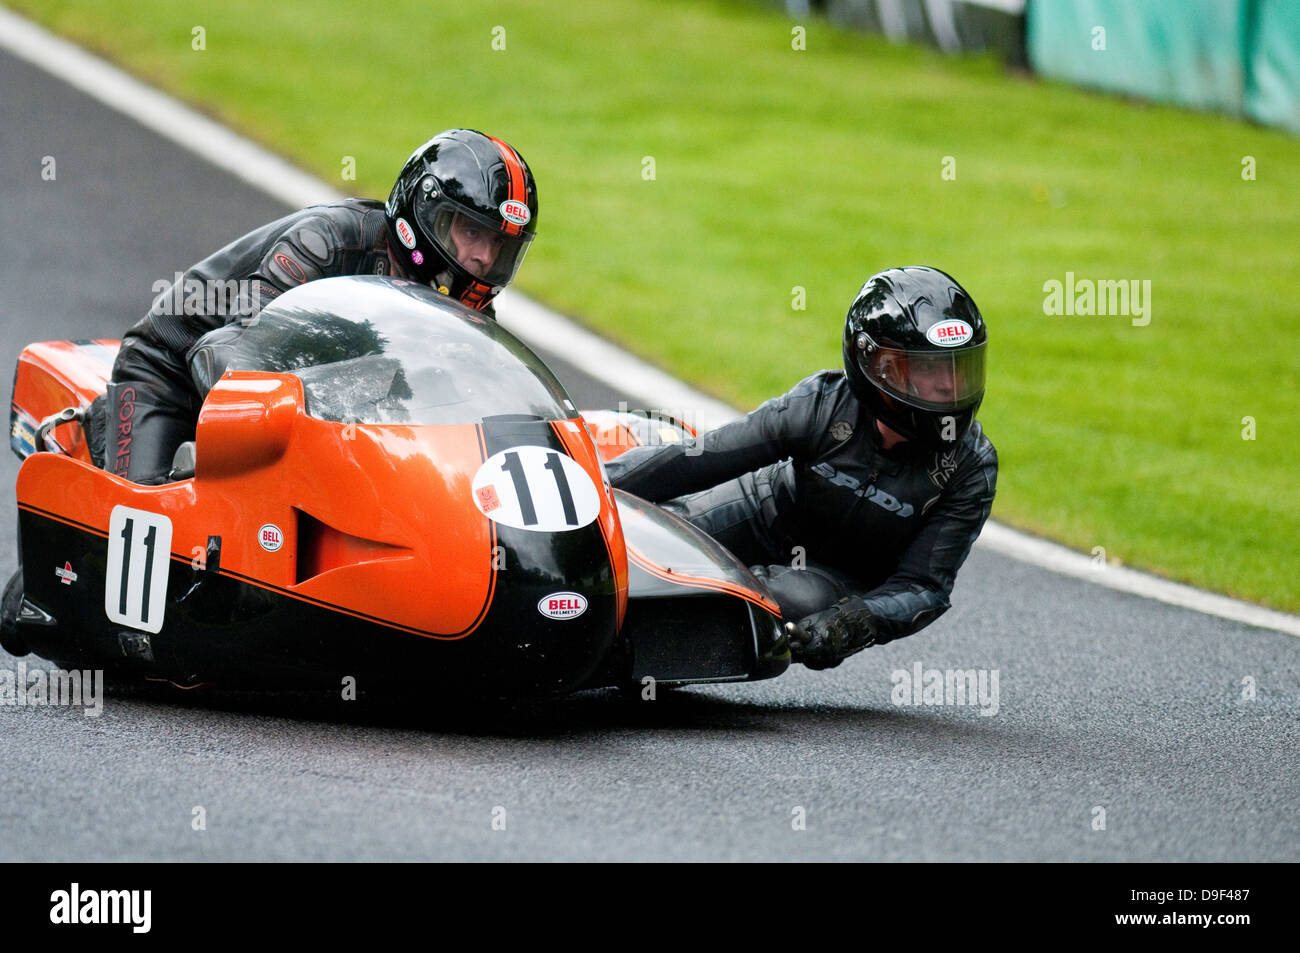 crmc classic sidecar racing sidecar race damien perilleux nancy stock photo royalty free. Black Bedroom Furniture Sets. Home Design Ideas